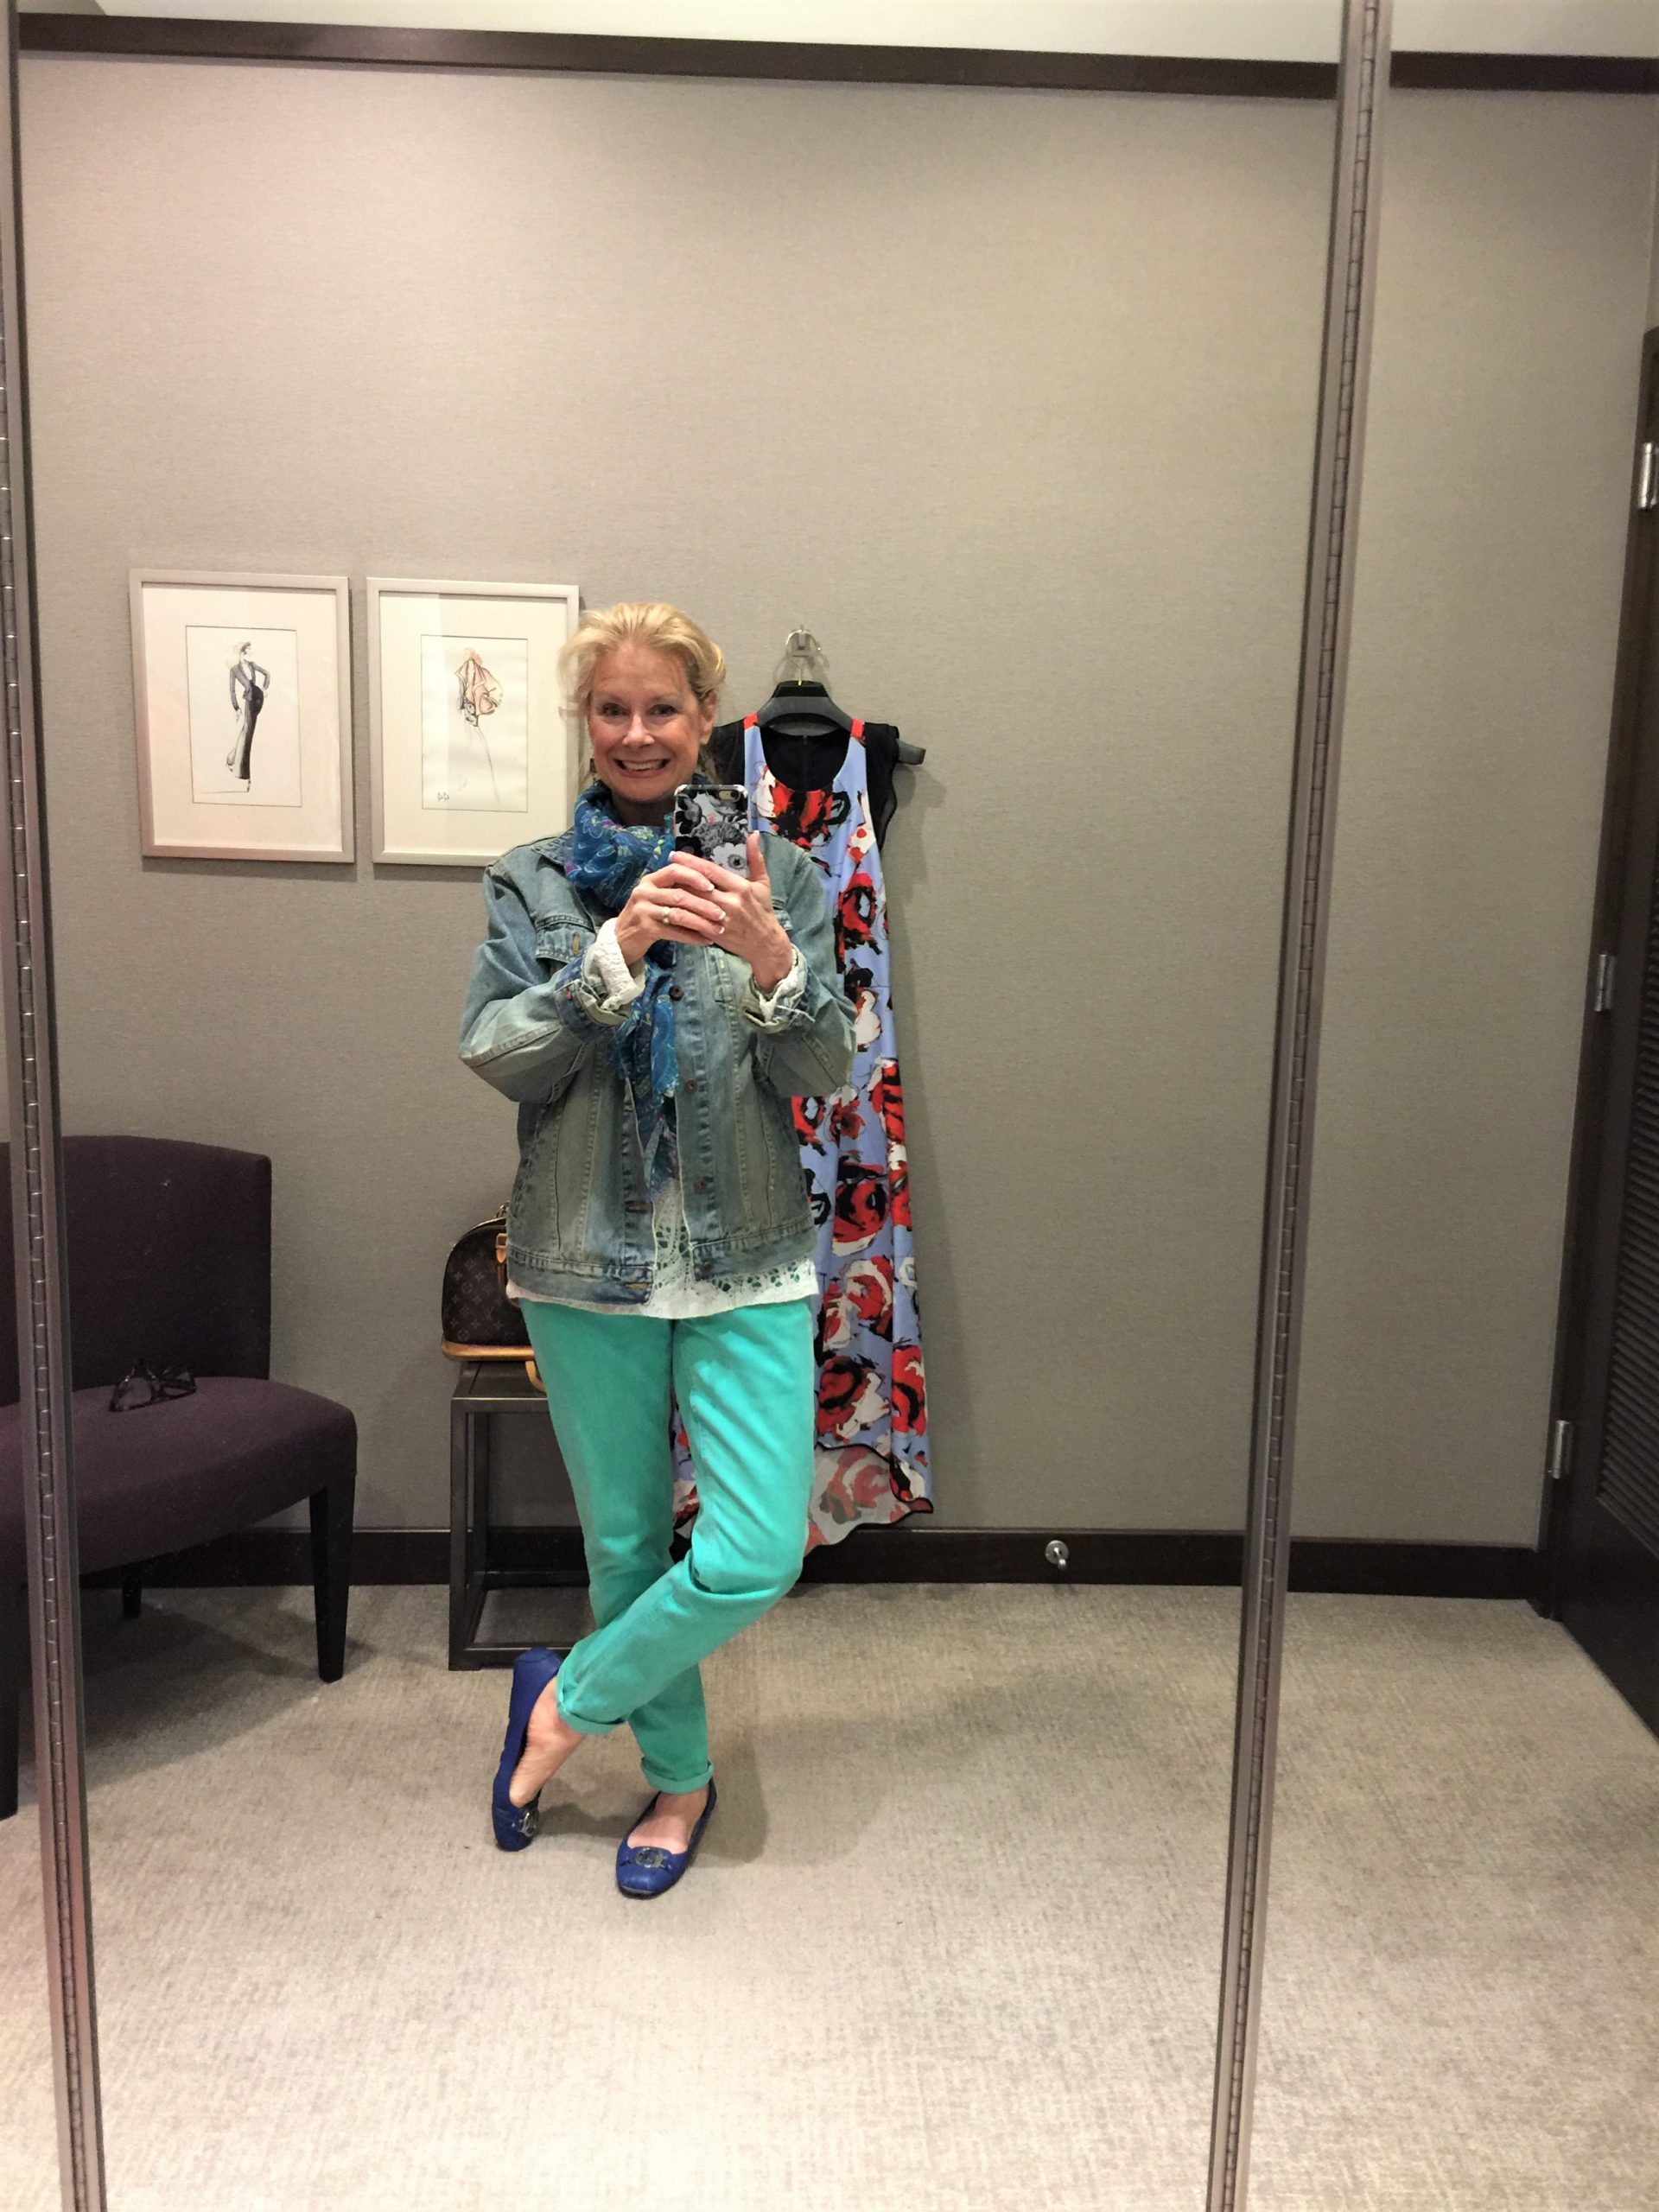 Congratulate, the mom dressing room changing think, that